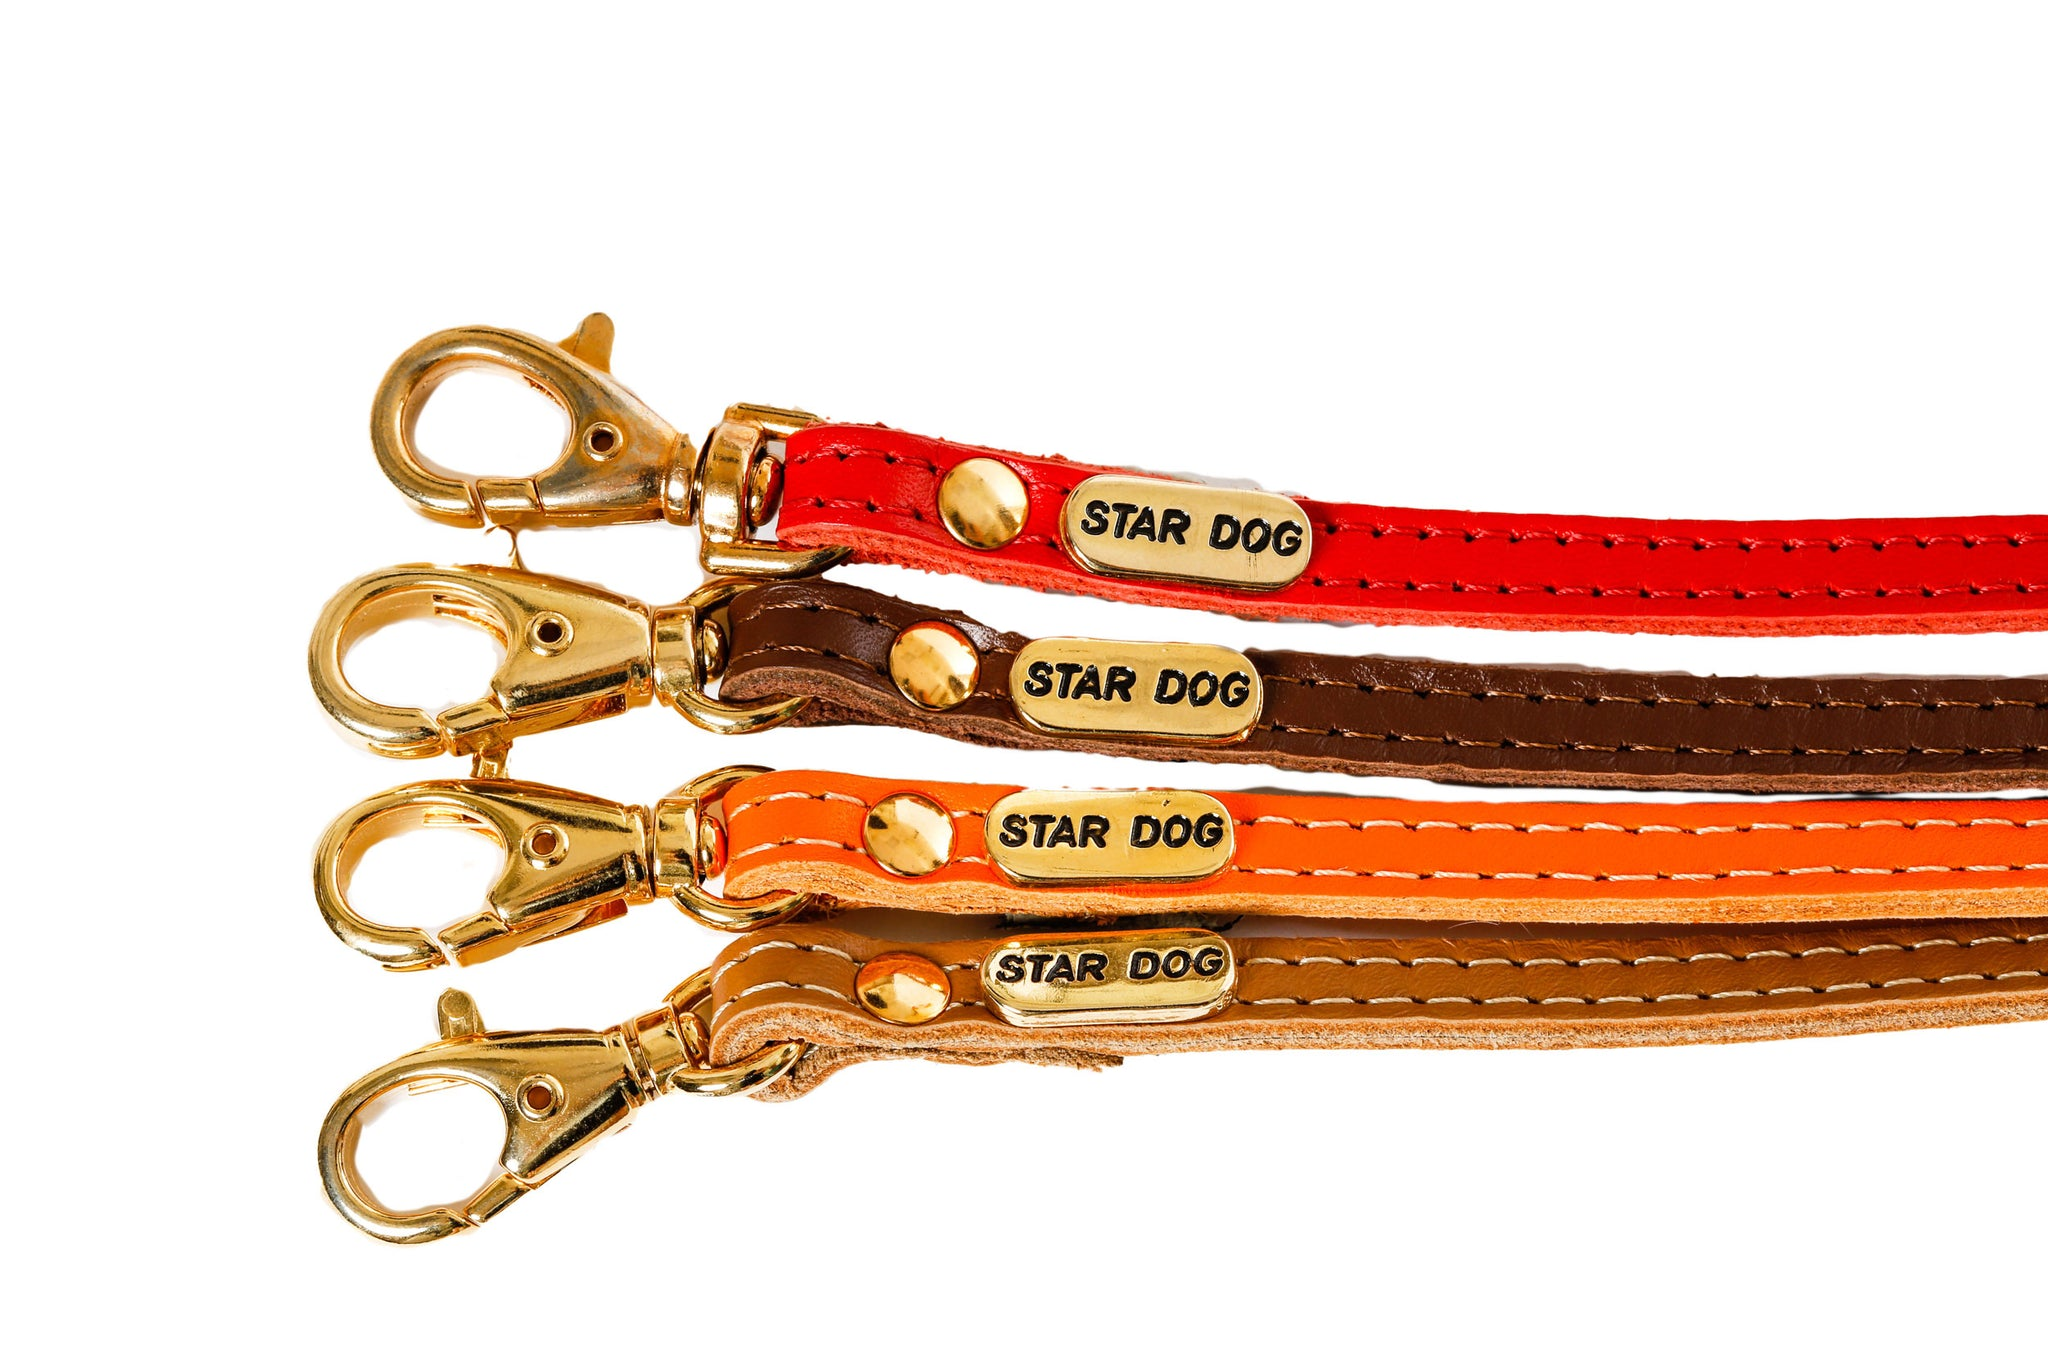 Jophi Lead - Dog Leads - Soft Leather - 7 Color Options